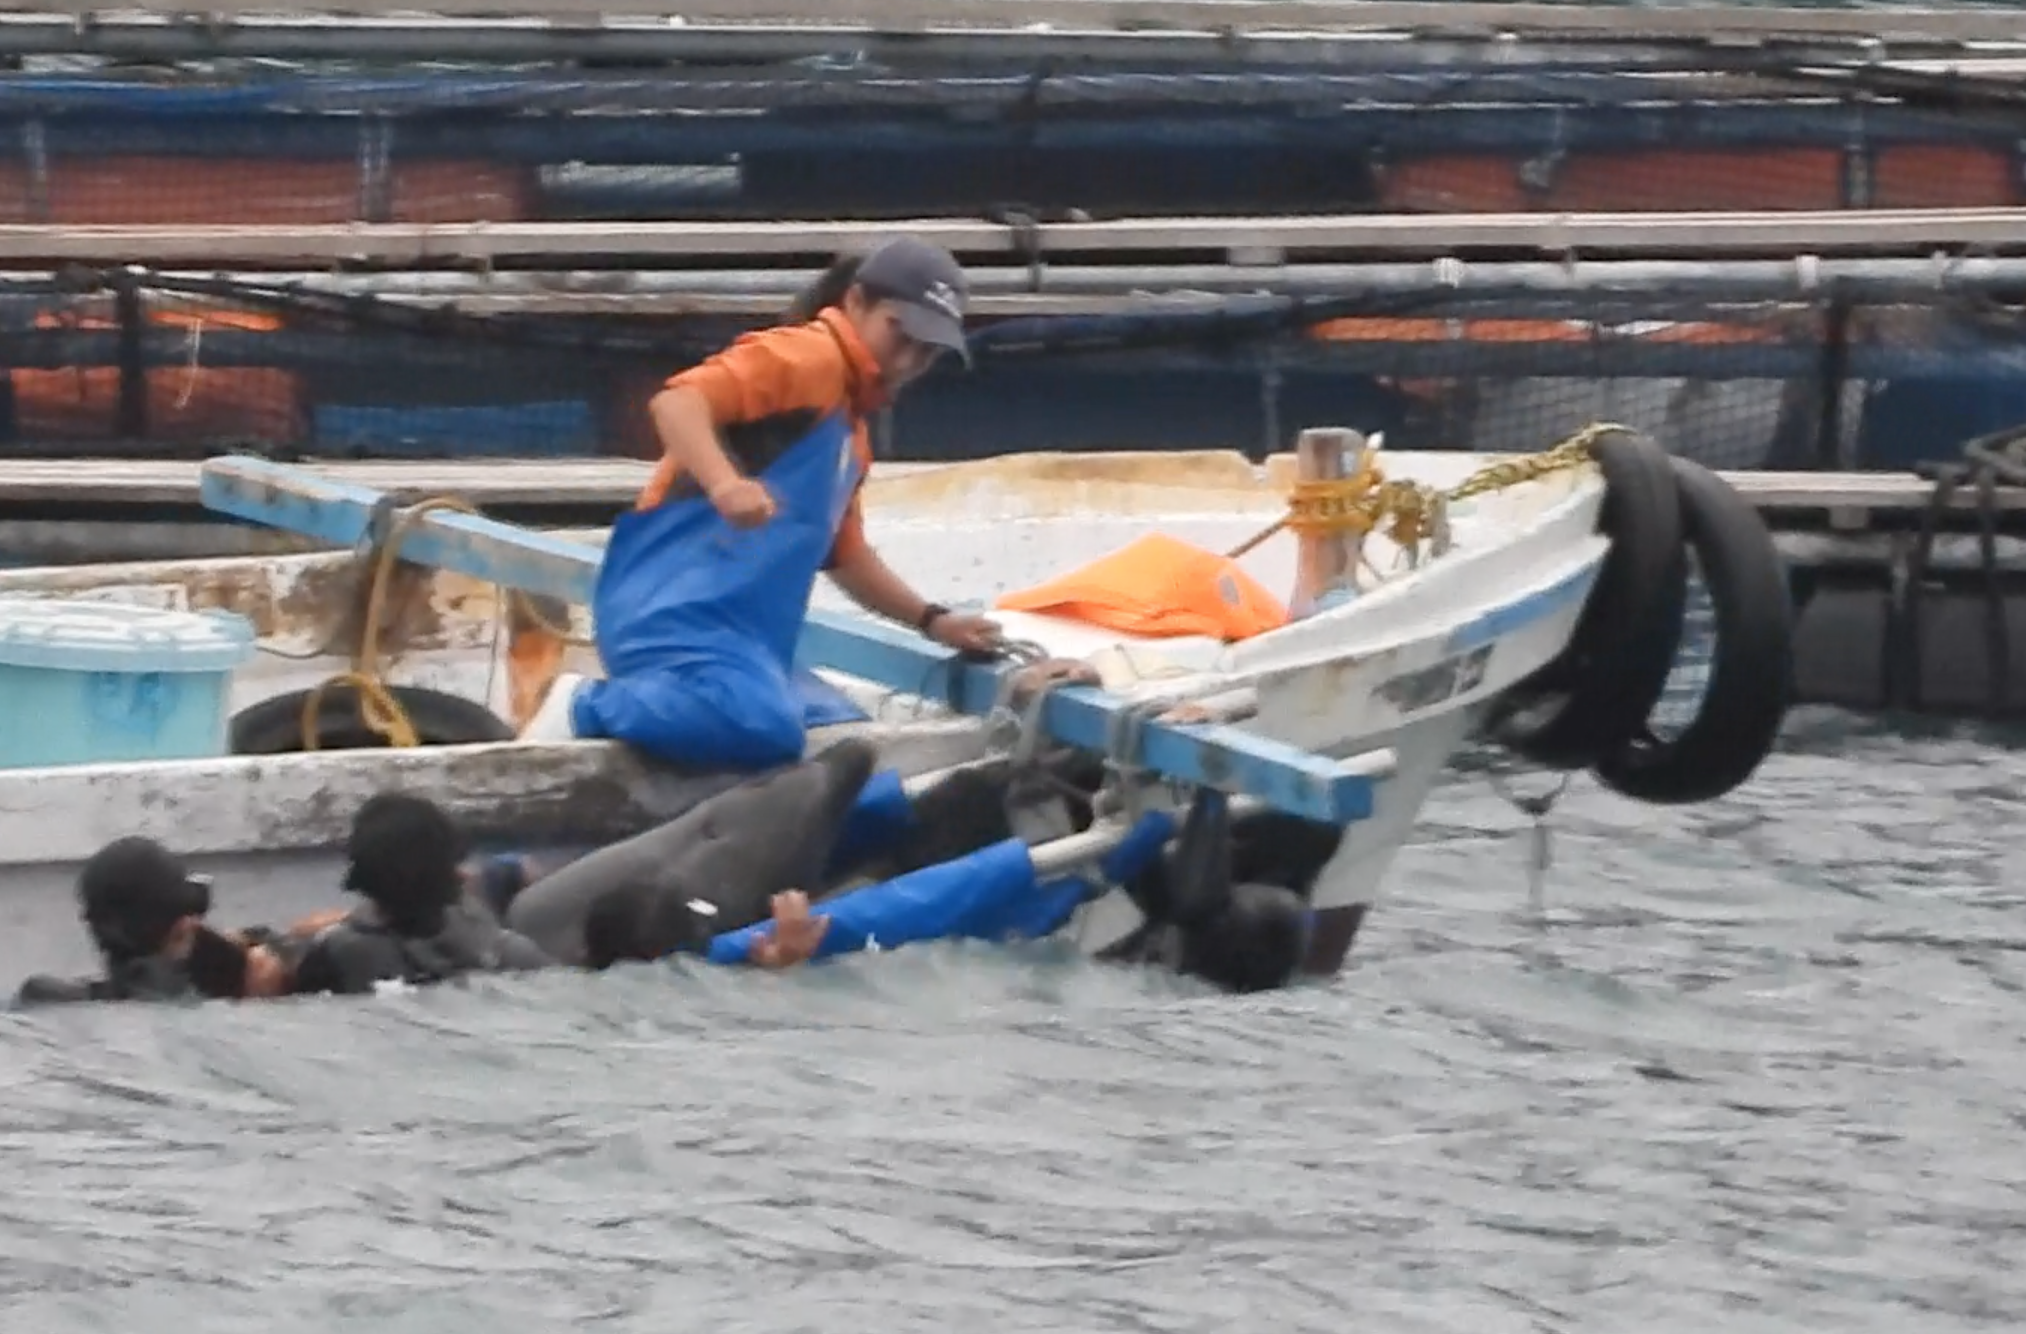 Trainer slams knee into captive bottlenose dolphin's head, Taiji, Japan